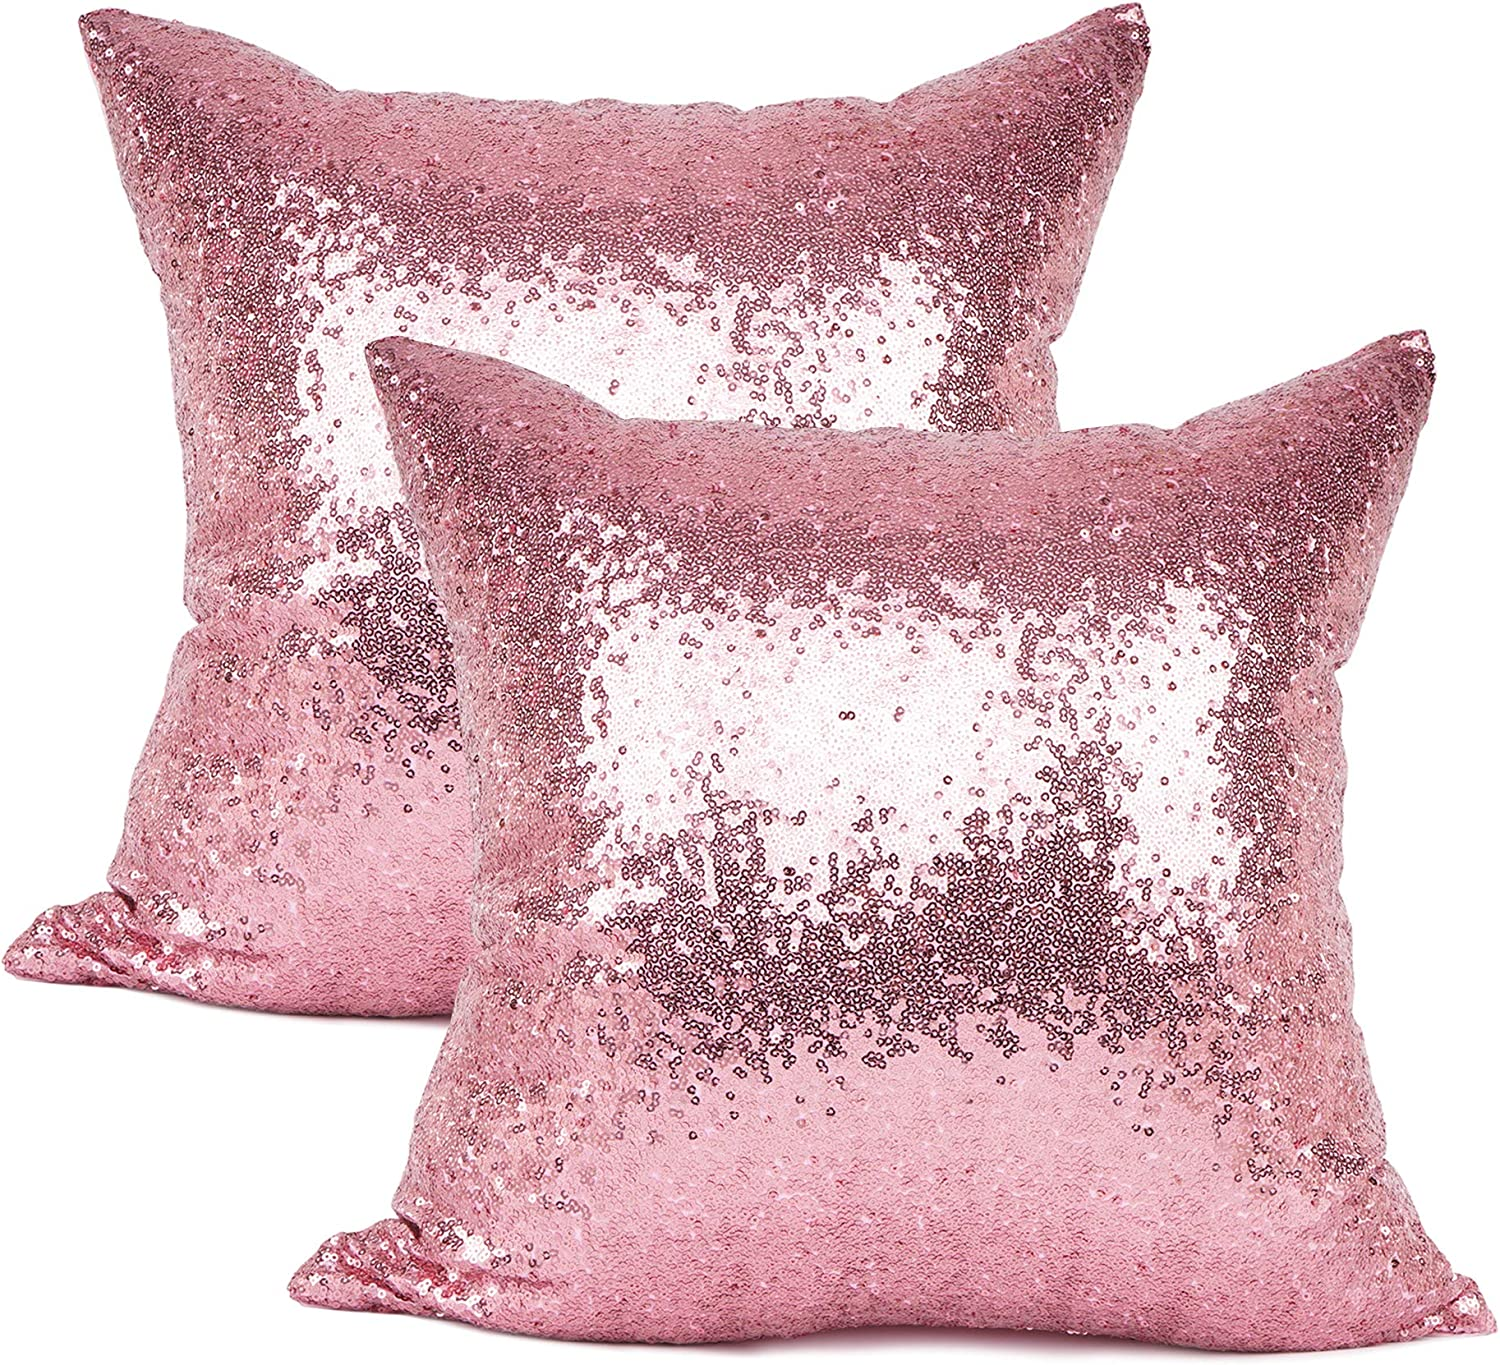 YOUR SMILE Pack of 2 New Luxury Series Pink Bling Decorative Glitzy Sequin & Comfy Satin Solid Throw Pillow Cover Cushion Case for Wedding/Christmas,18